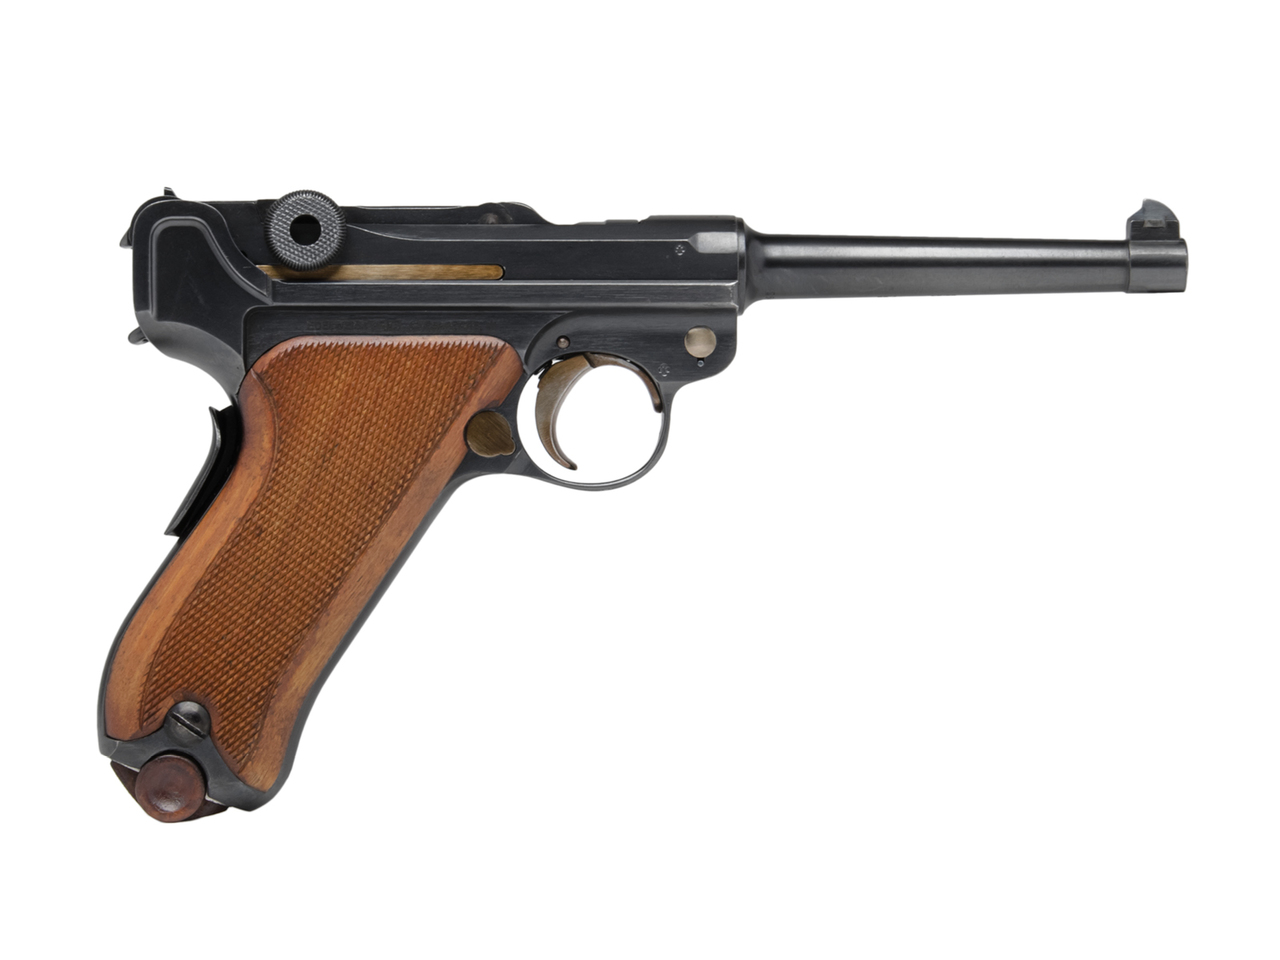 Swiss Luger 06/24 - $3000 (06/24-26493) - Edelweiss Arms